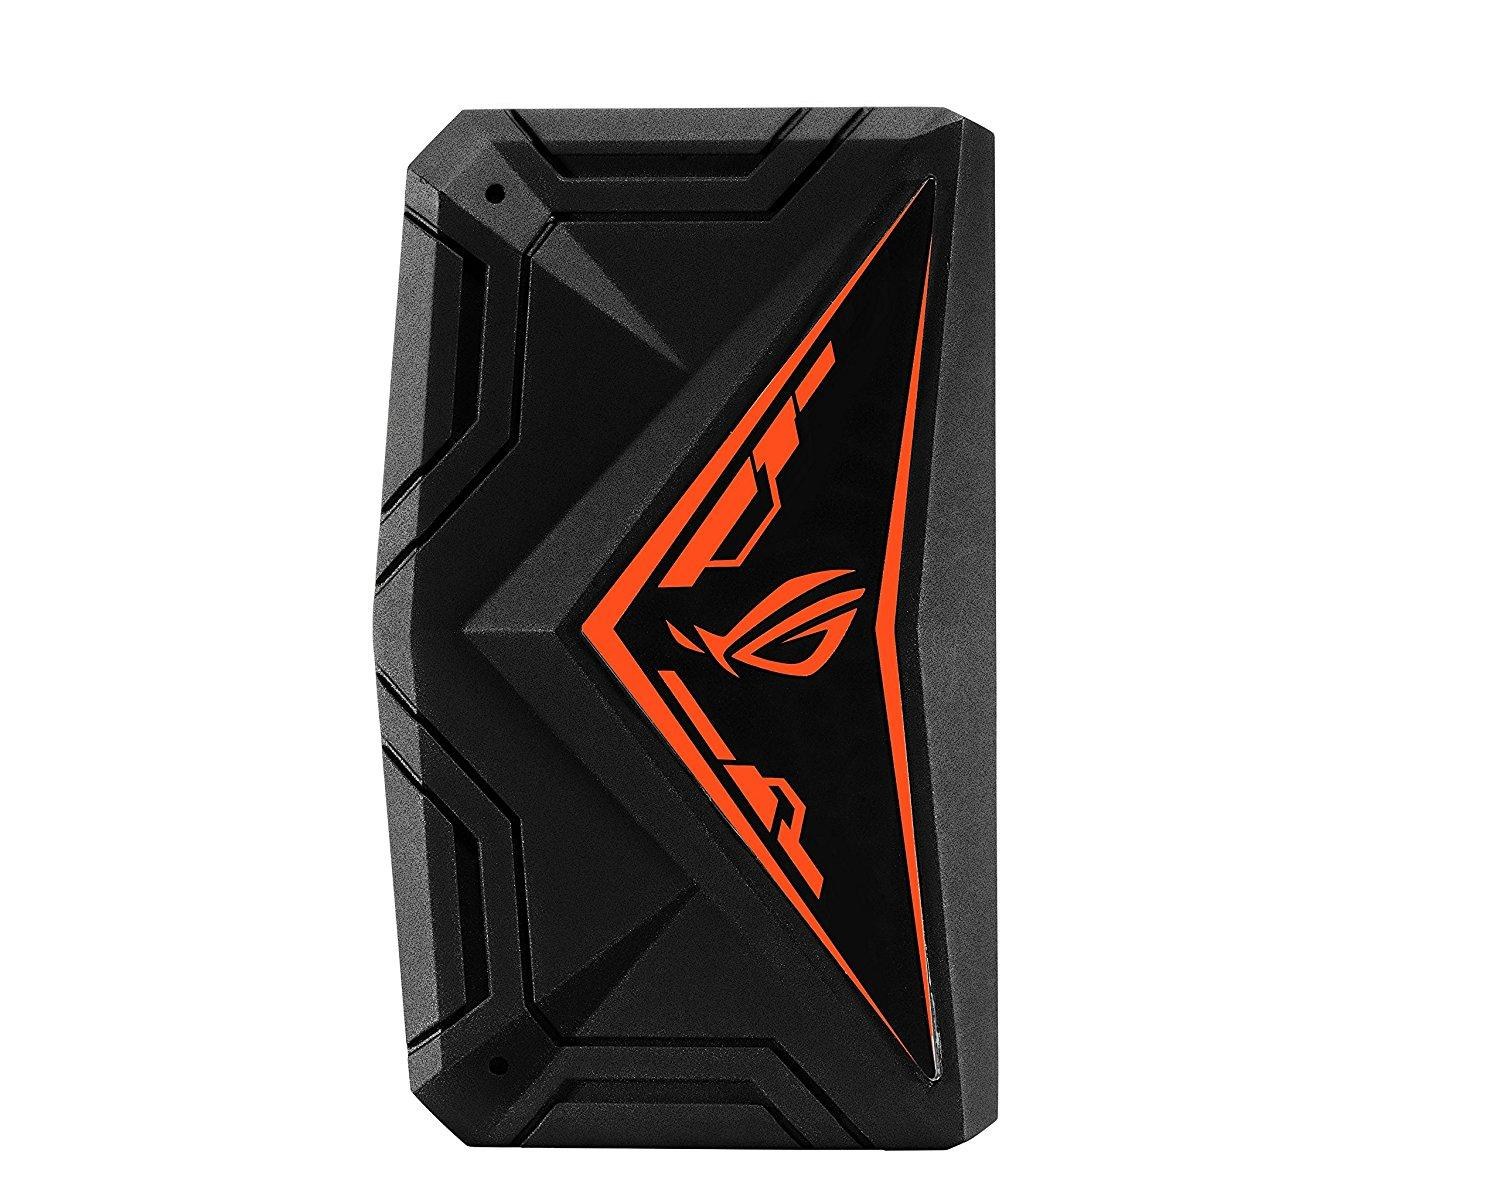 ASUS ROG SLI Bridge (2-Way) 4 Slot